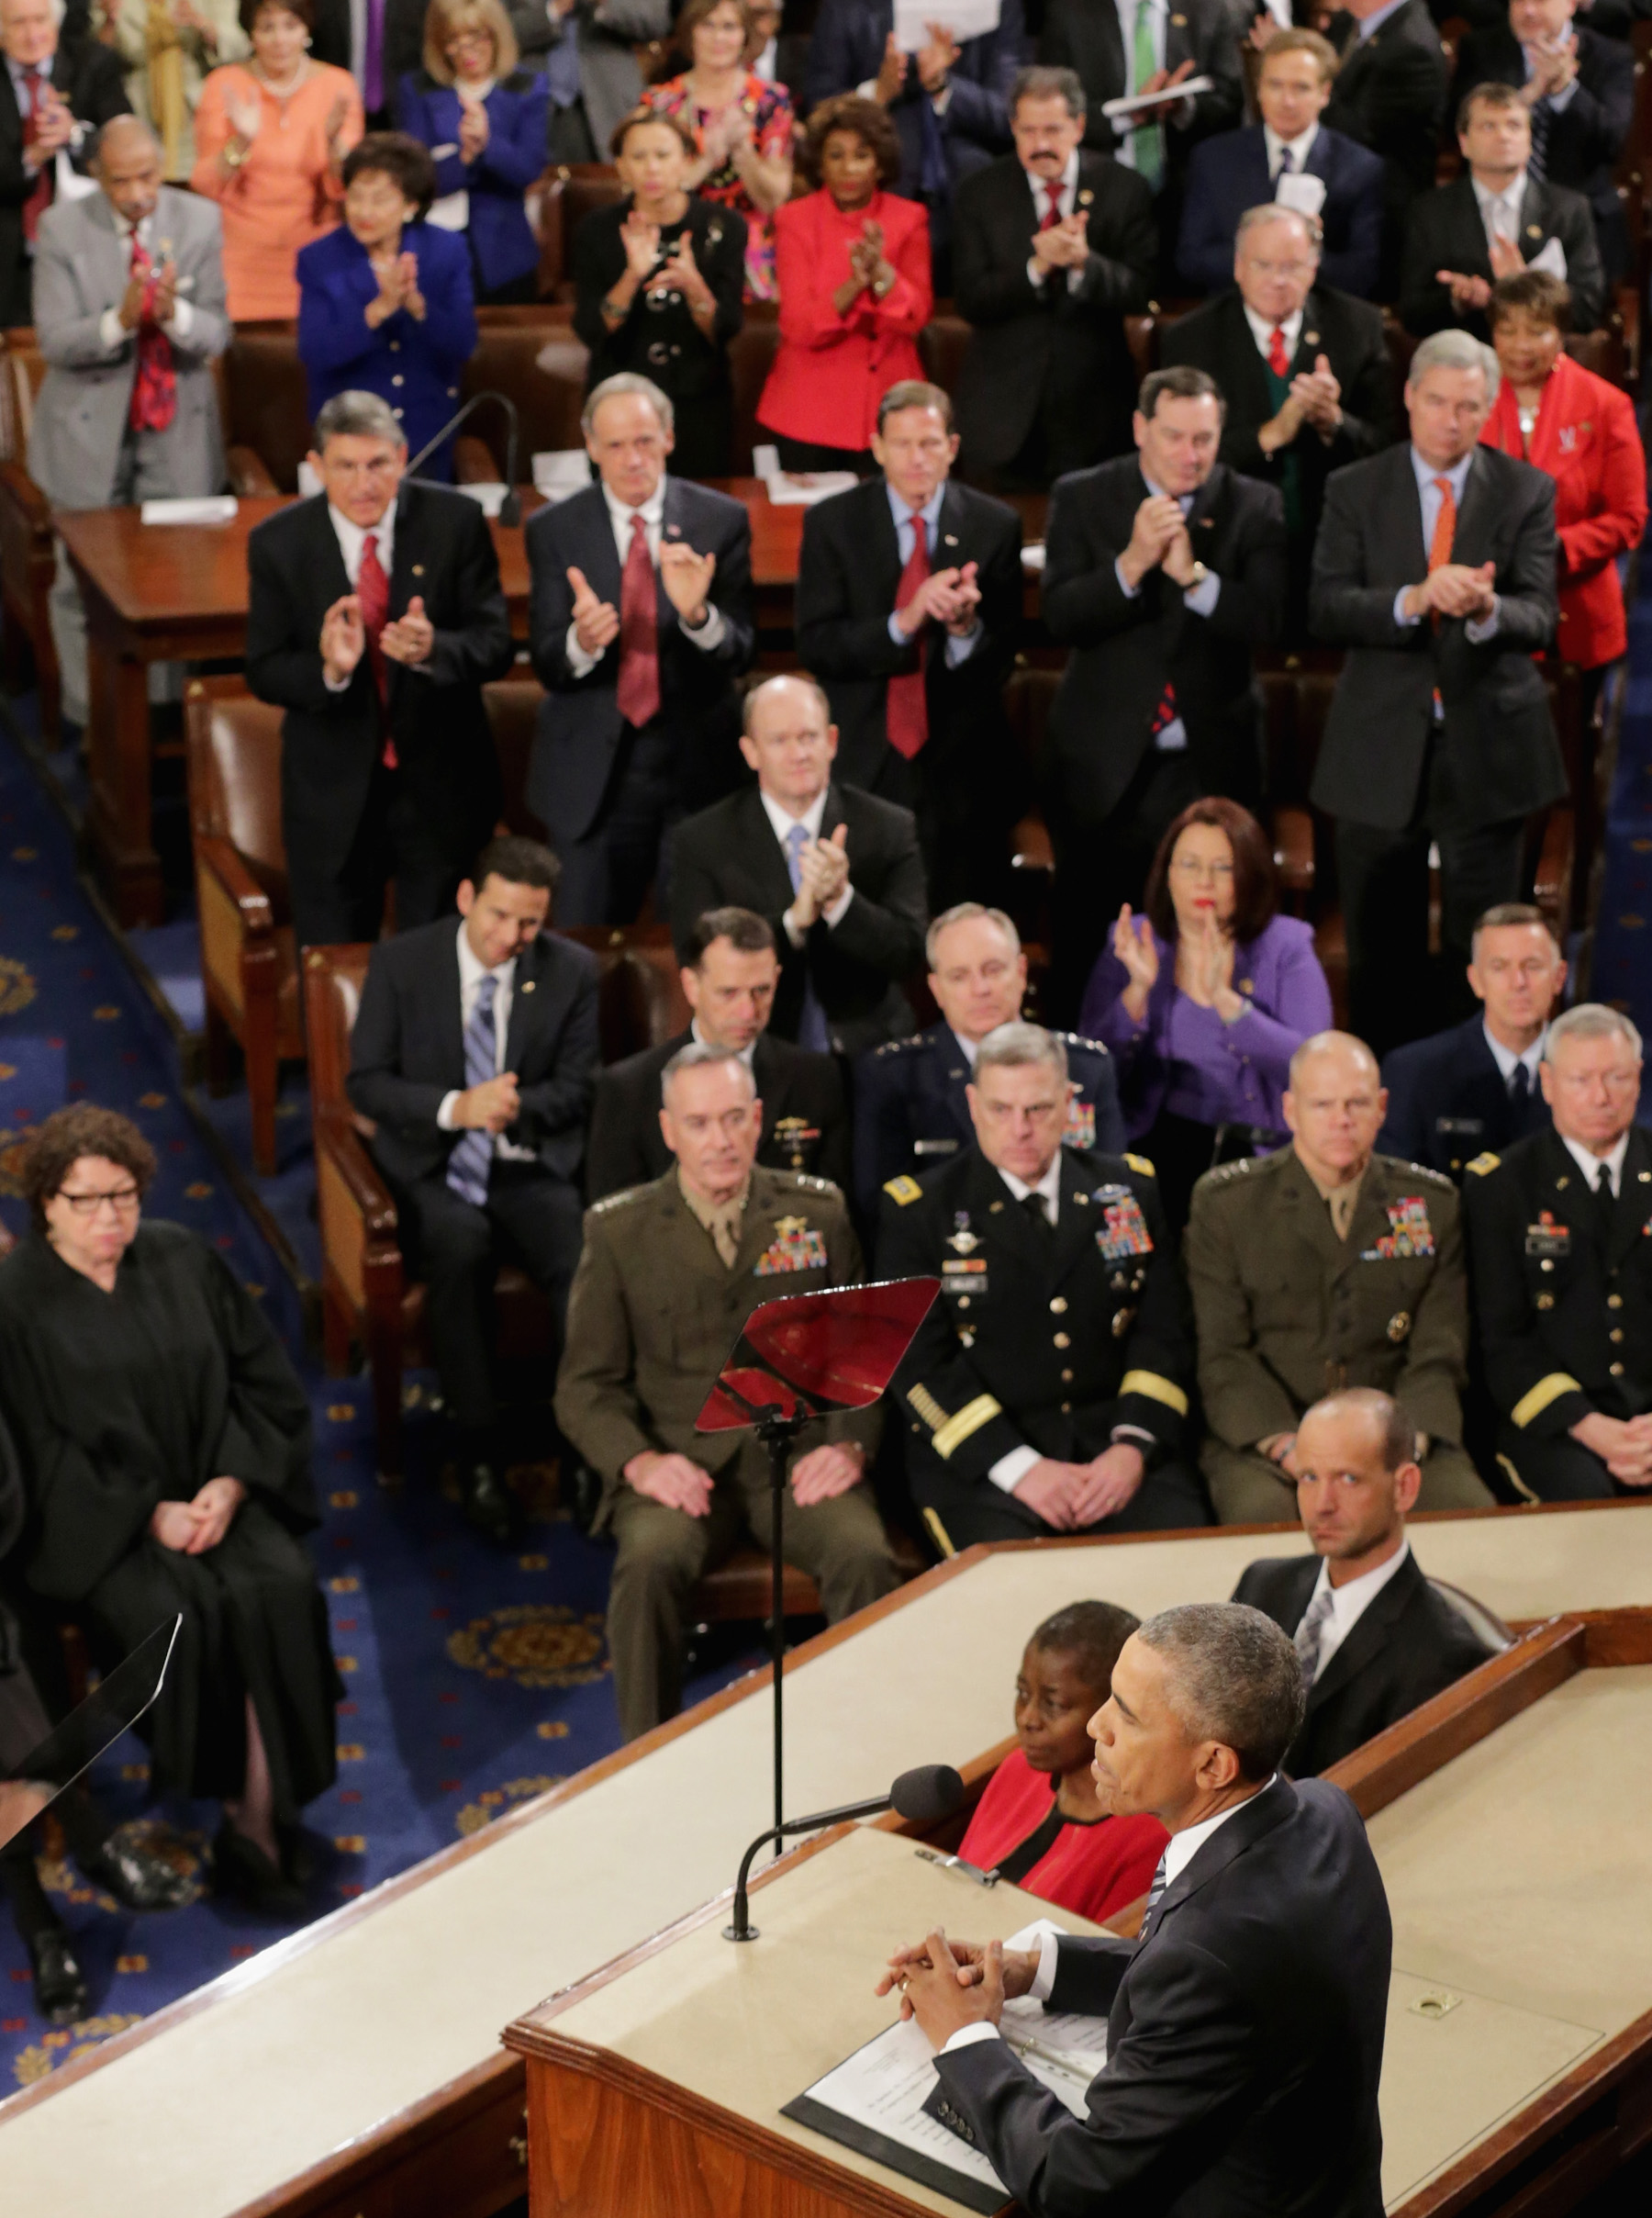 Obama, Joint Chiefs, State of the Union